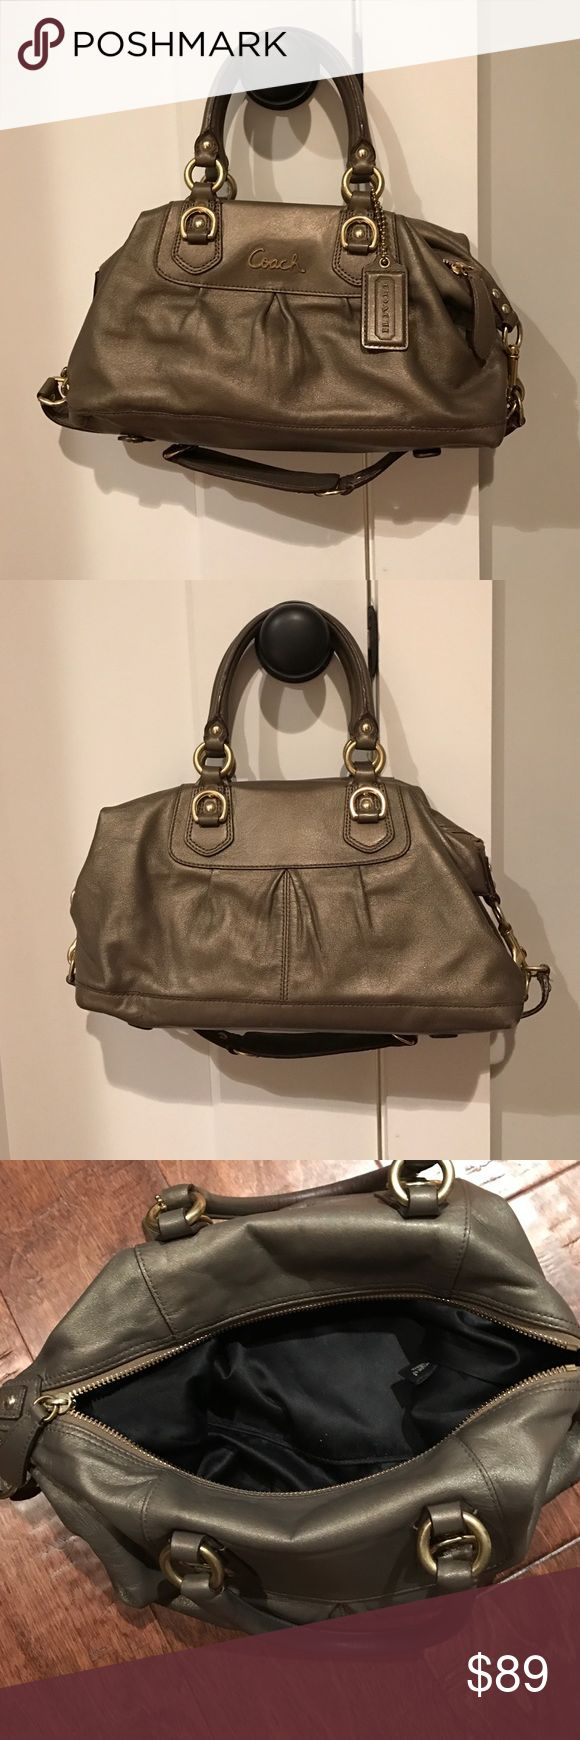 Coach. Satchel. Lovely shimmering grey with gold Leather. Very soft. Great condition. No stains or signs of wear at all. Strap can be used to carry bag multiple ways or just use handles. Gold buckles and accents.  Size is 6wx12Lx7H Coach Bags